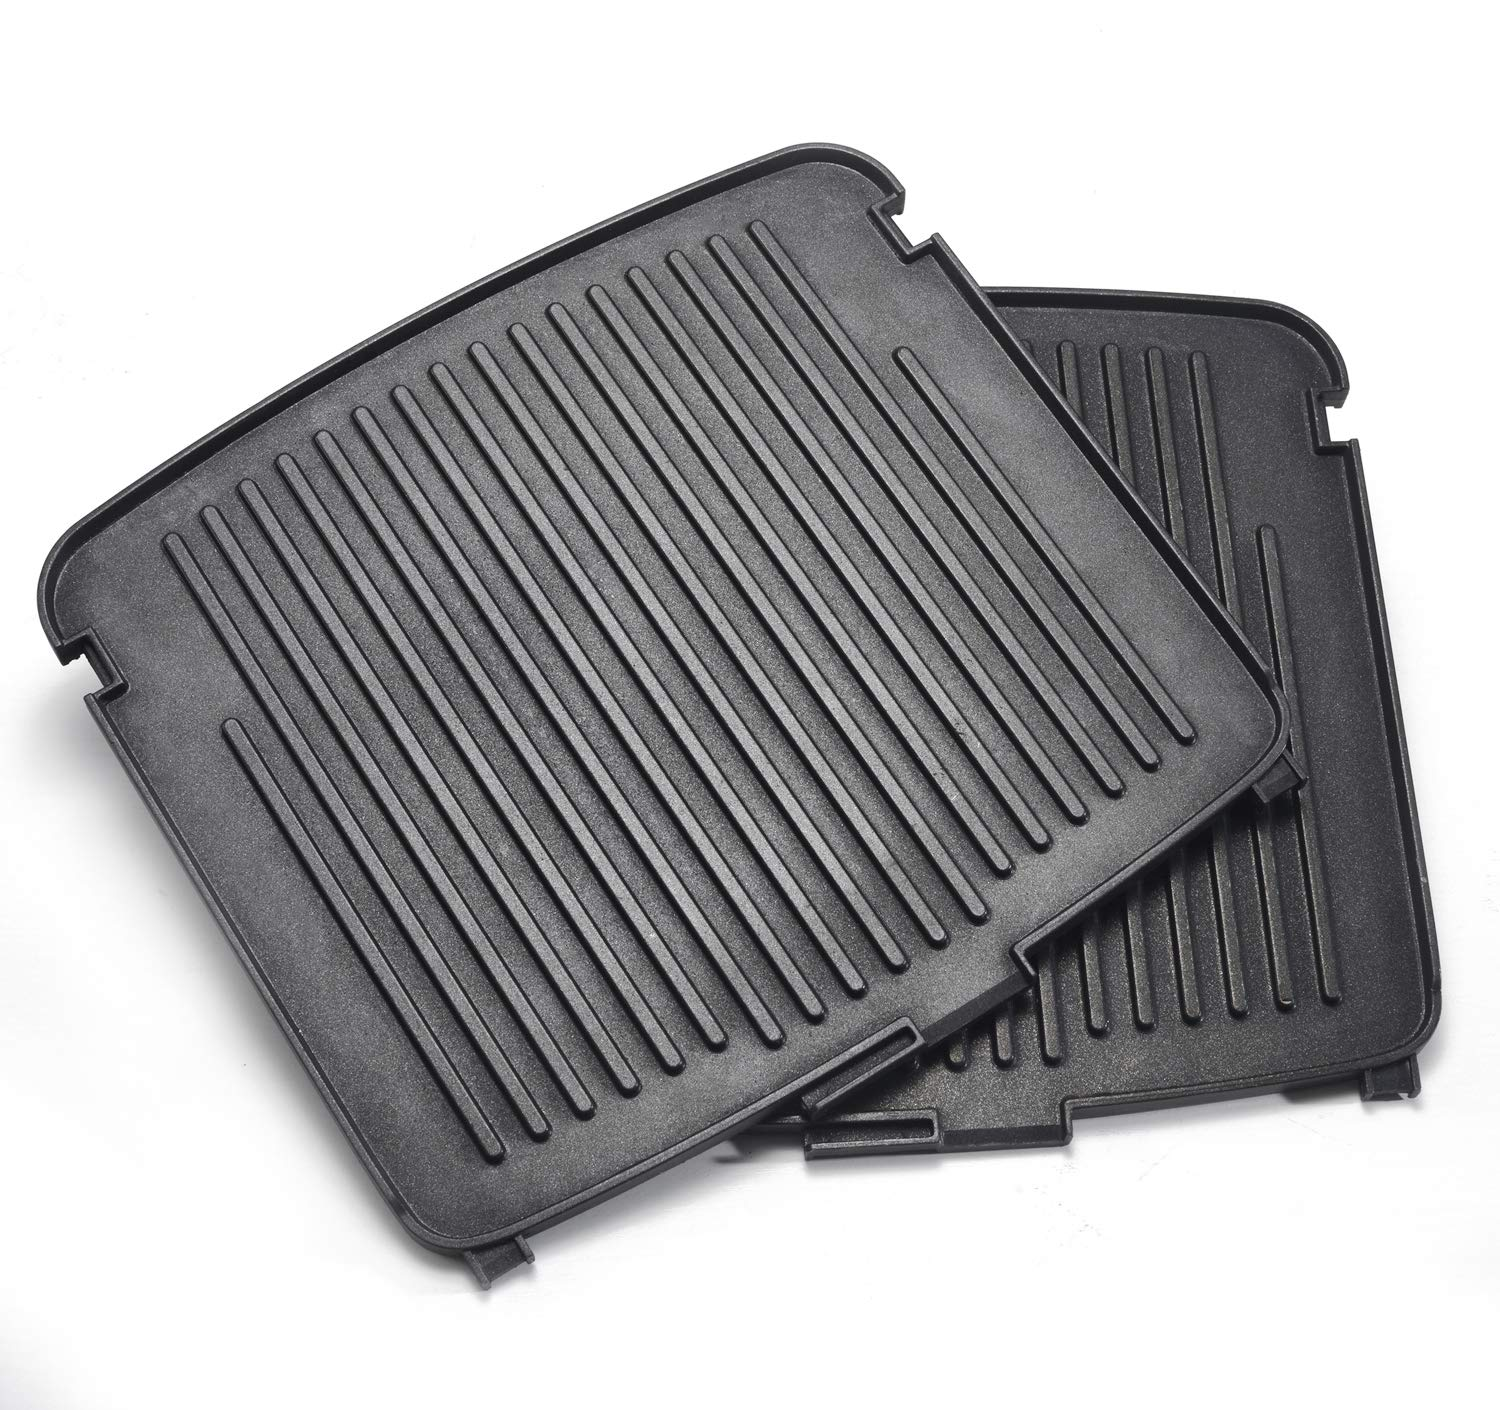 UsKitchen Reversible Grill/Griddle Plates for Cuisinart Griddler GR-150 Deluxe